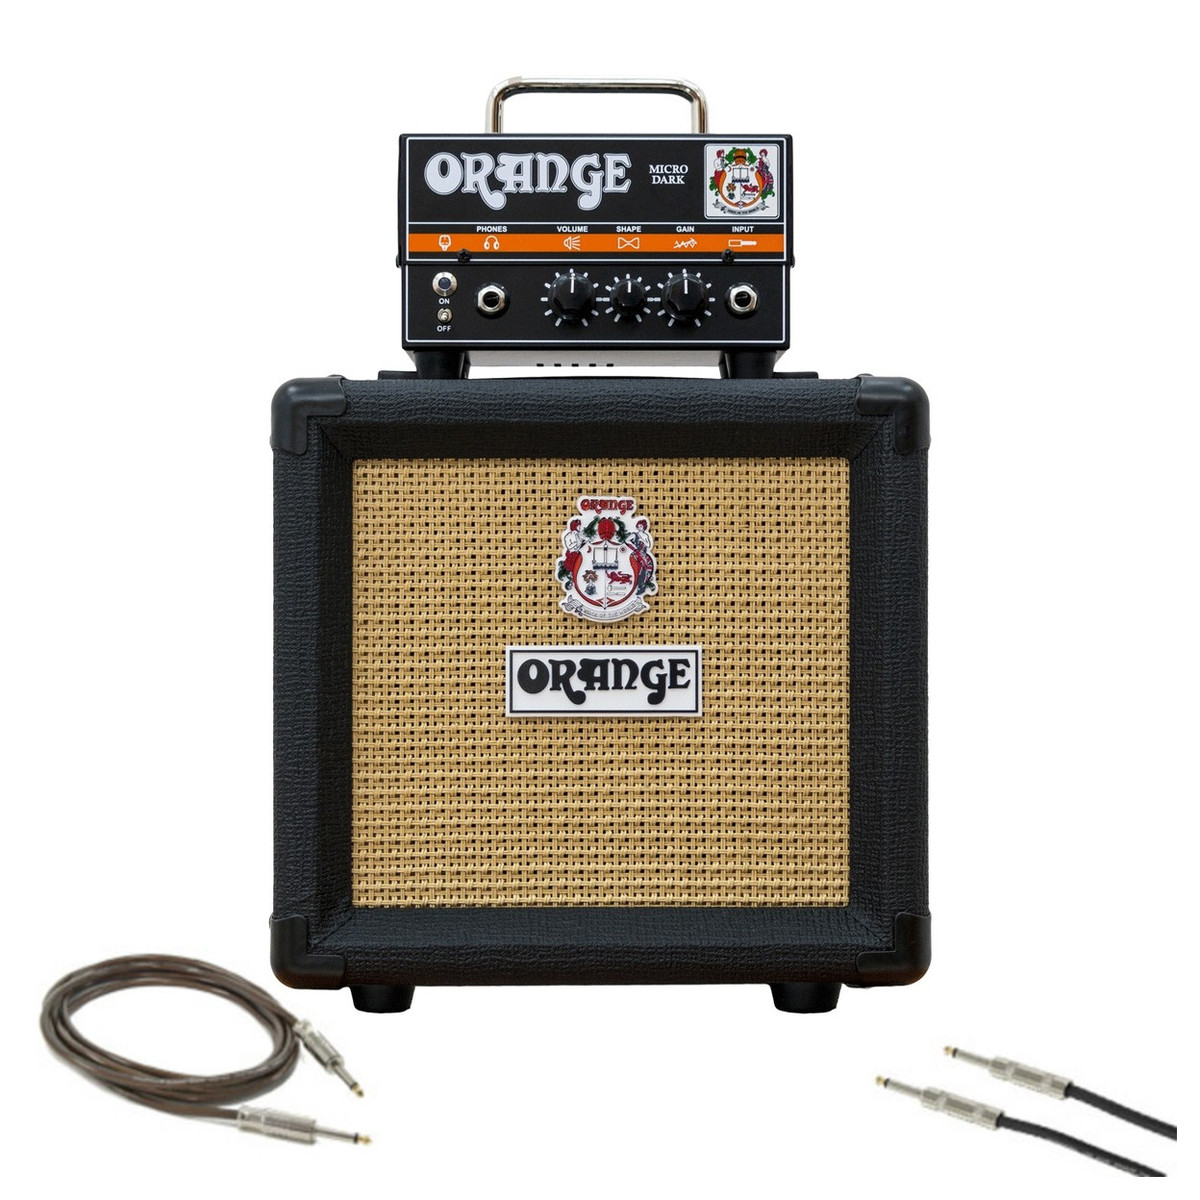 orange micro dark guitar amp pack with cables gear4music. Black Bedroom Furniture Sets. Home Design Ideas